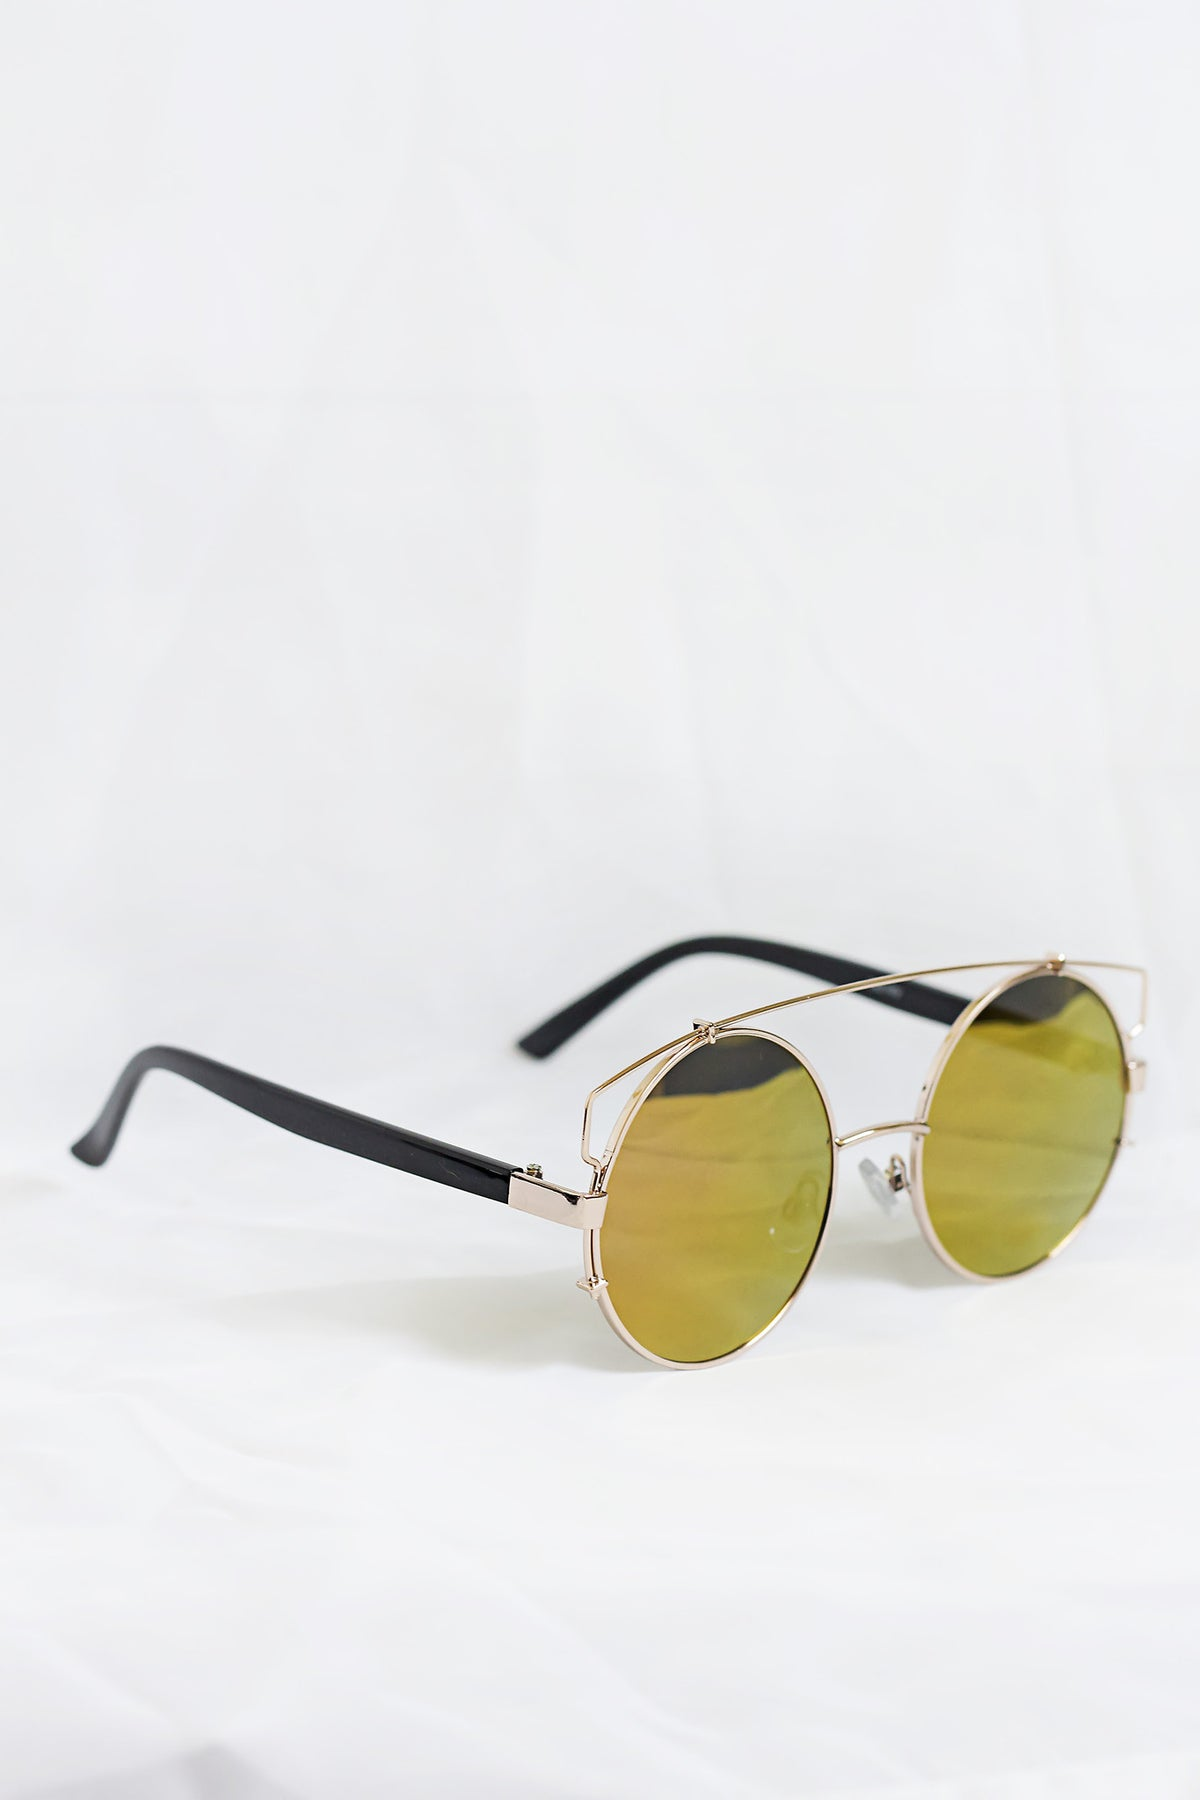 Boho Gold Sunglasses - Pink Lenses - House of W